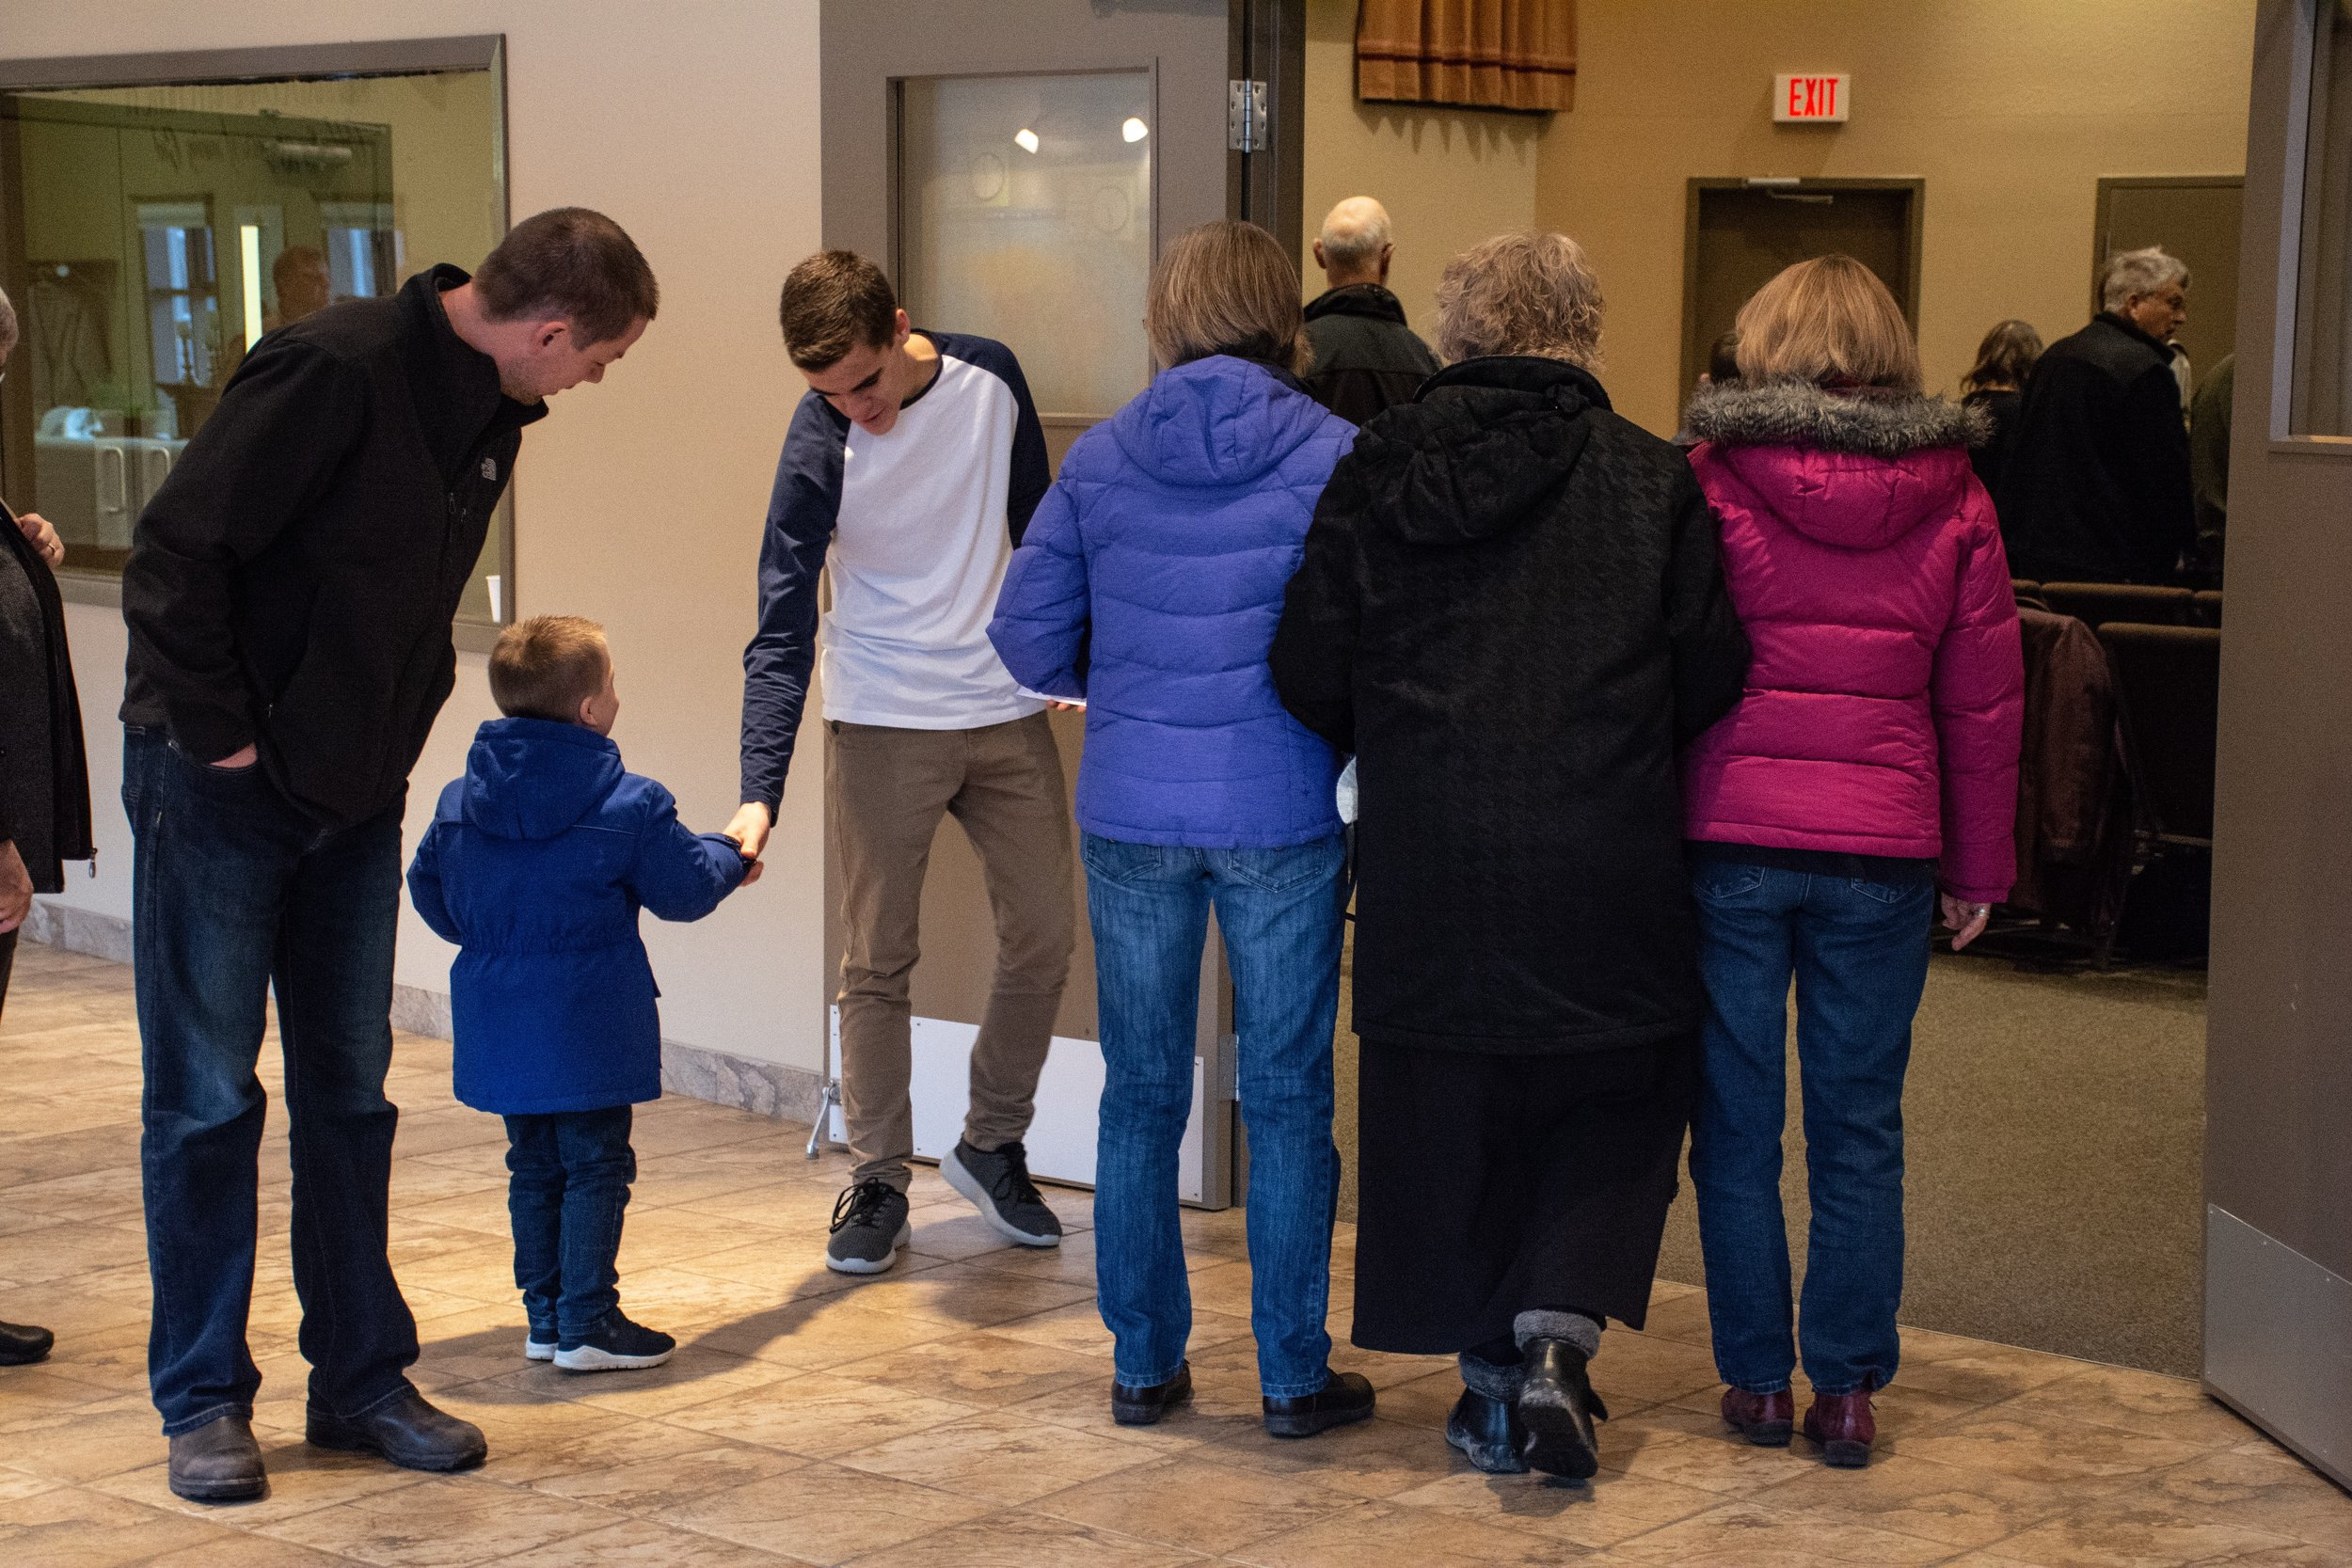 Greeting those entering the worship service at Nechako Community Church